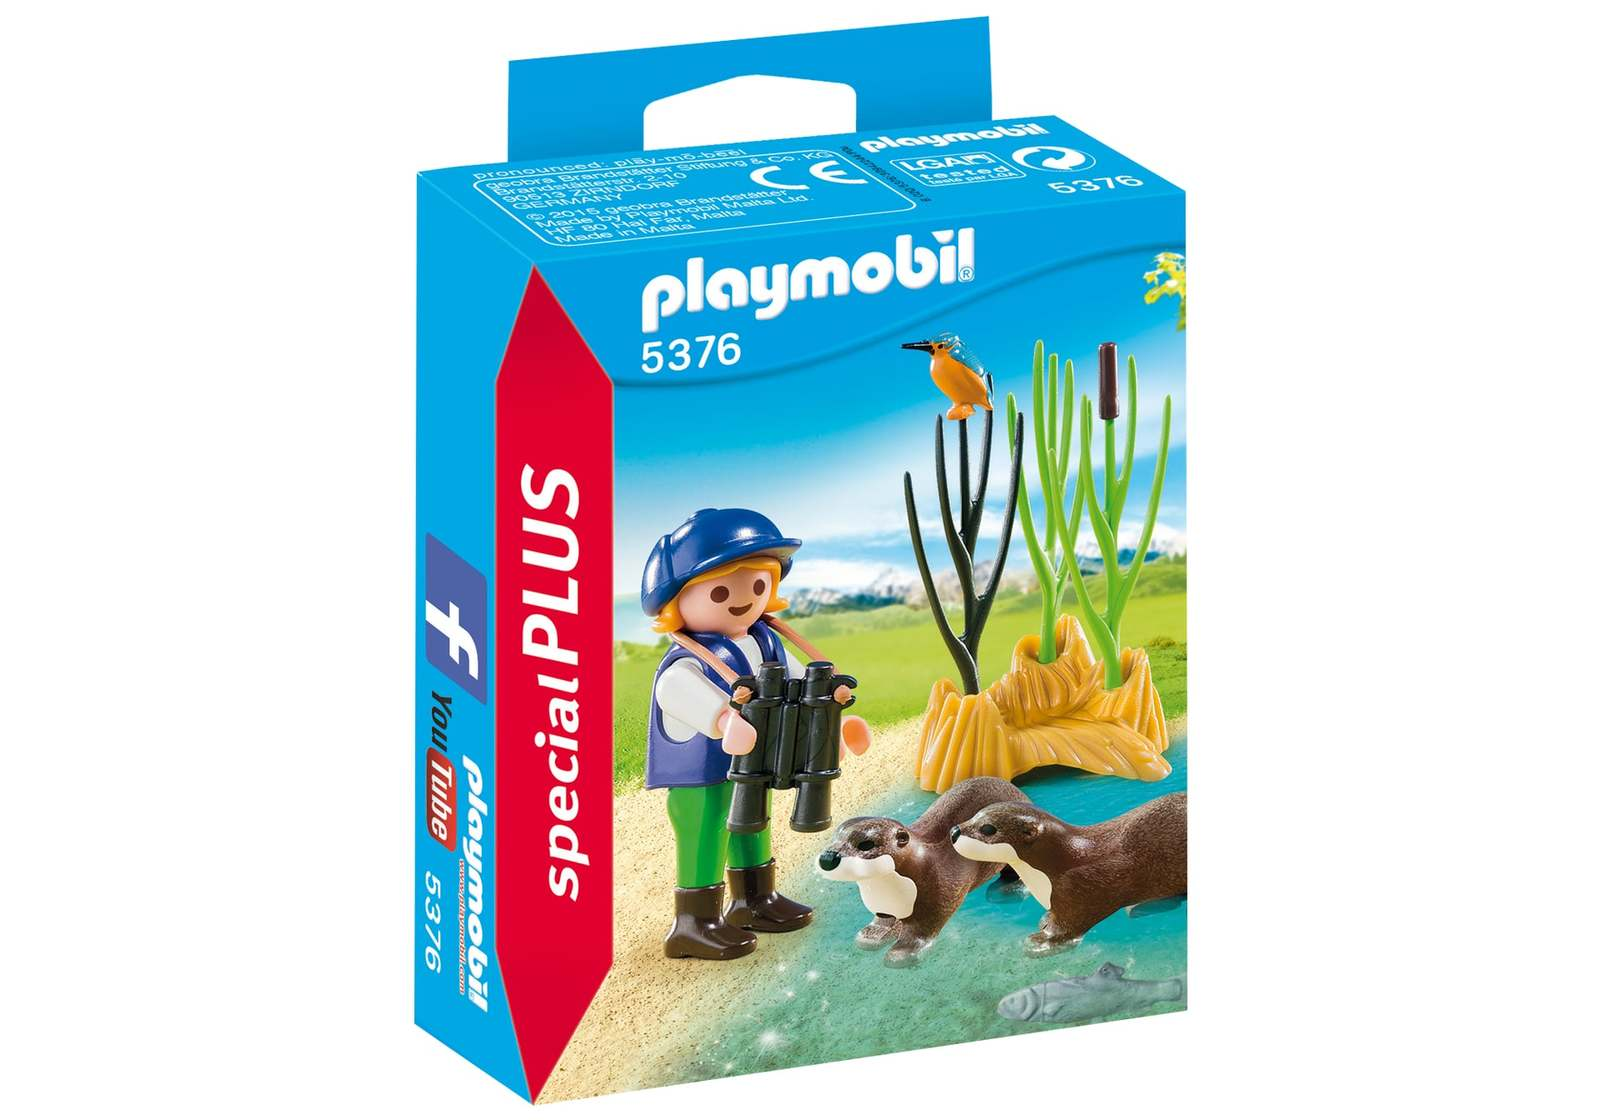 Playmobil: Special Plus - Young Explorer with Otters image